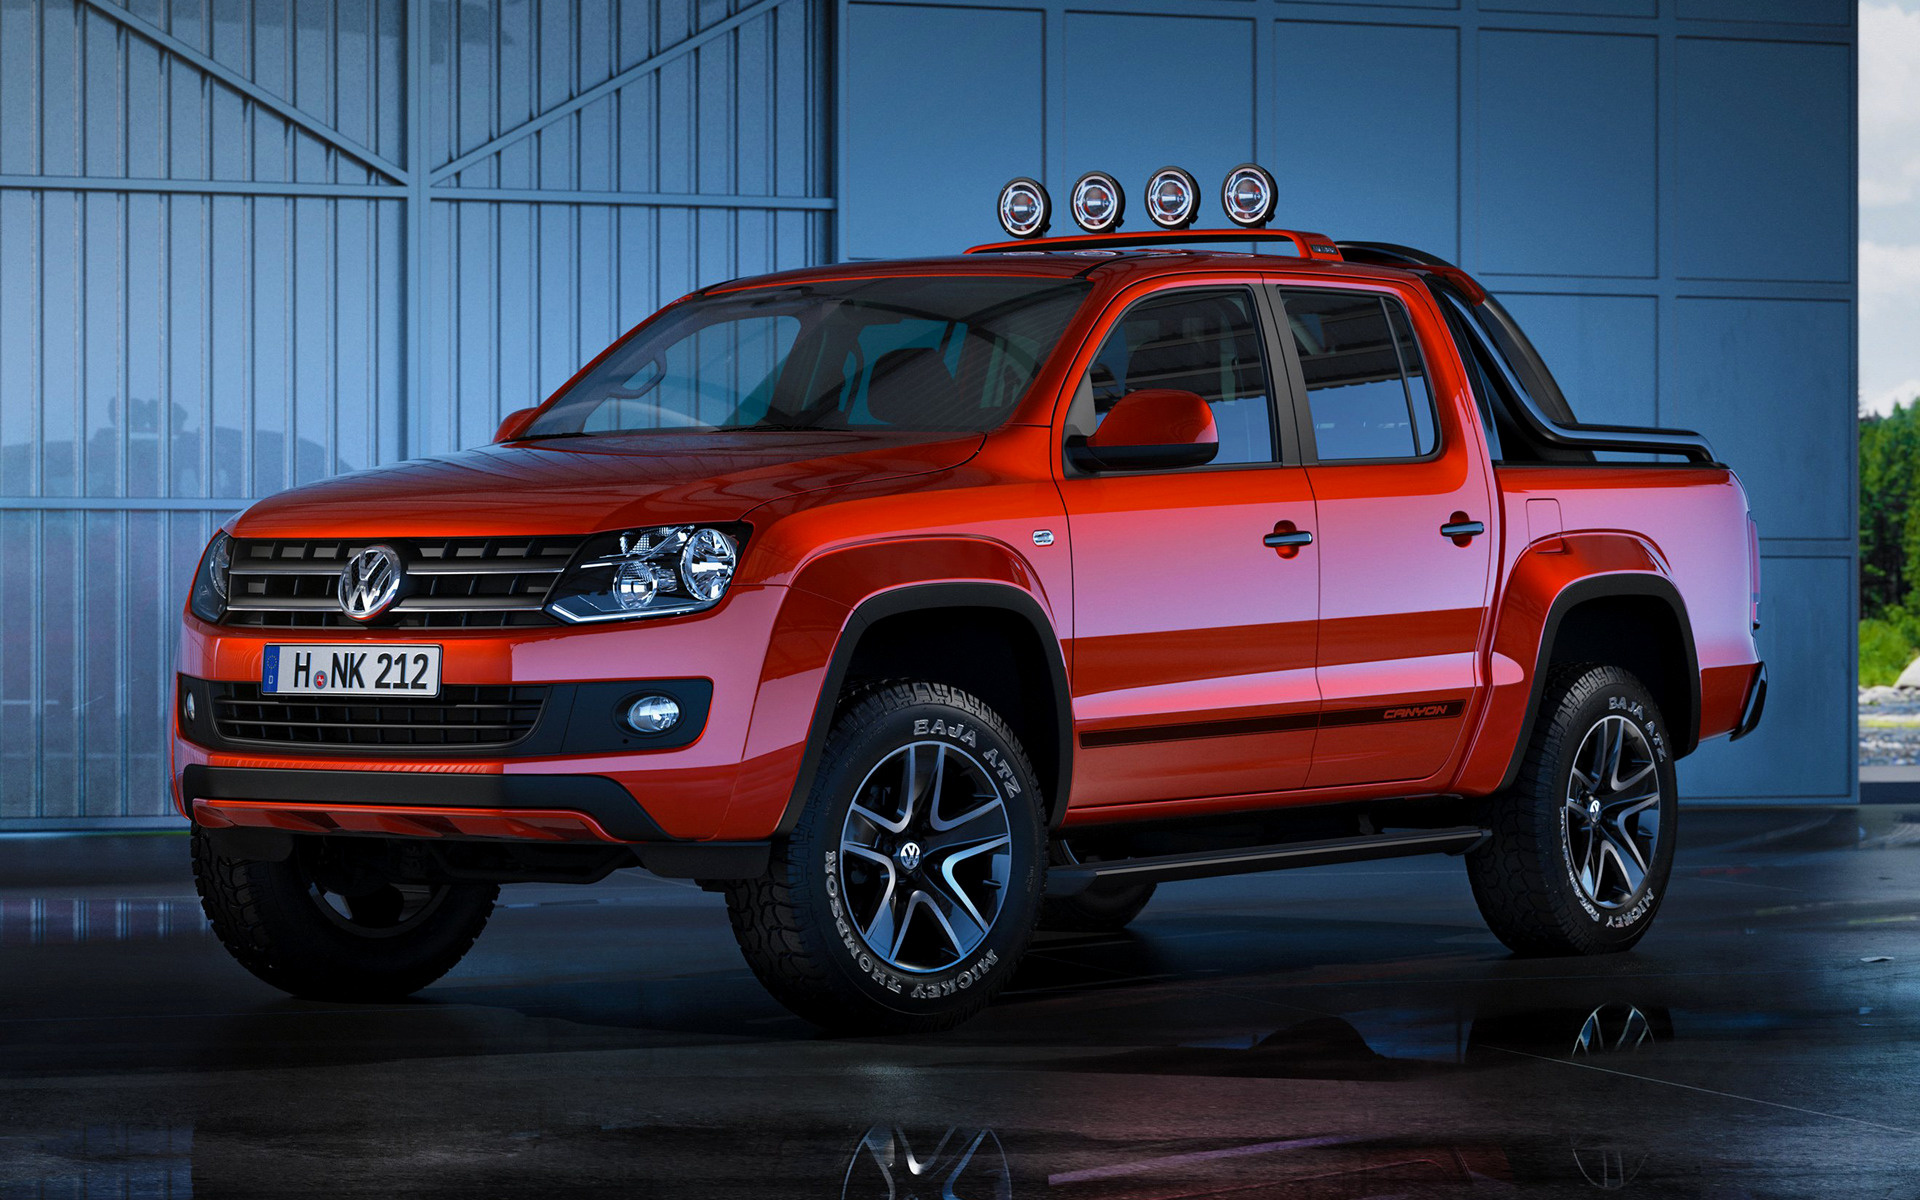 2012 Volkswagen Amarok Canyon Concept Wallpapers And Hd